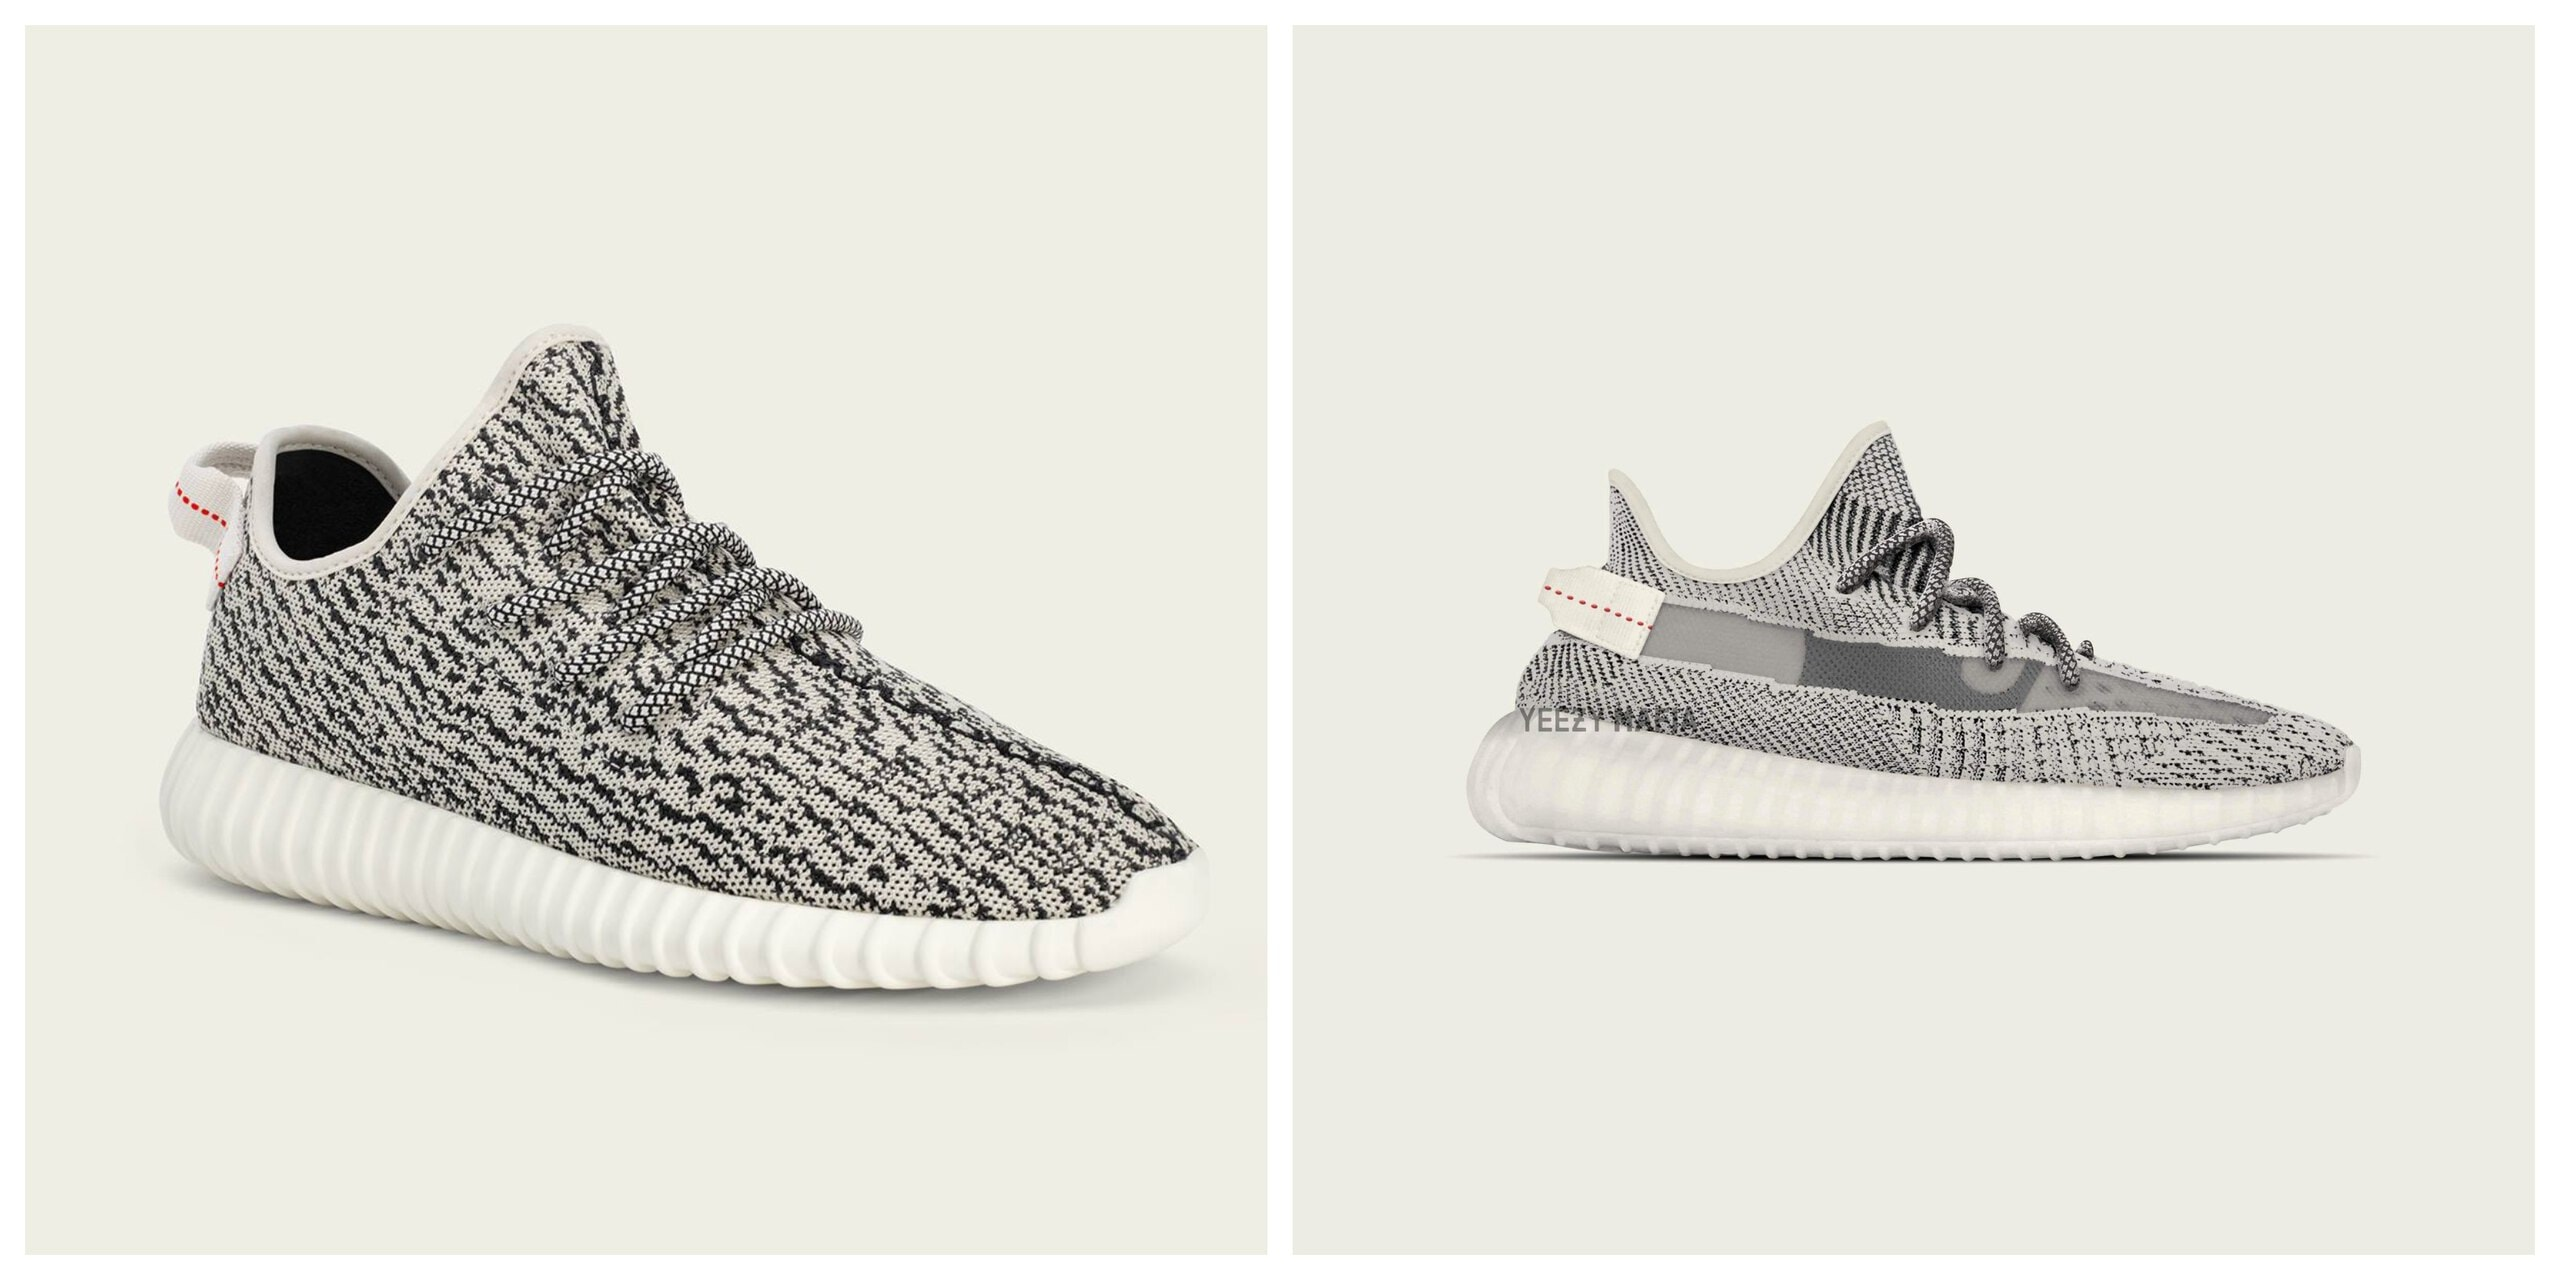 adidas Yeezy Boost: 350 V1 Turtle Dove and 350 V2 Turtle Dove - Which pair is better?